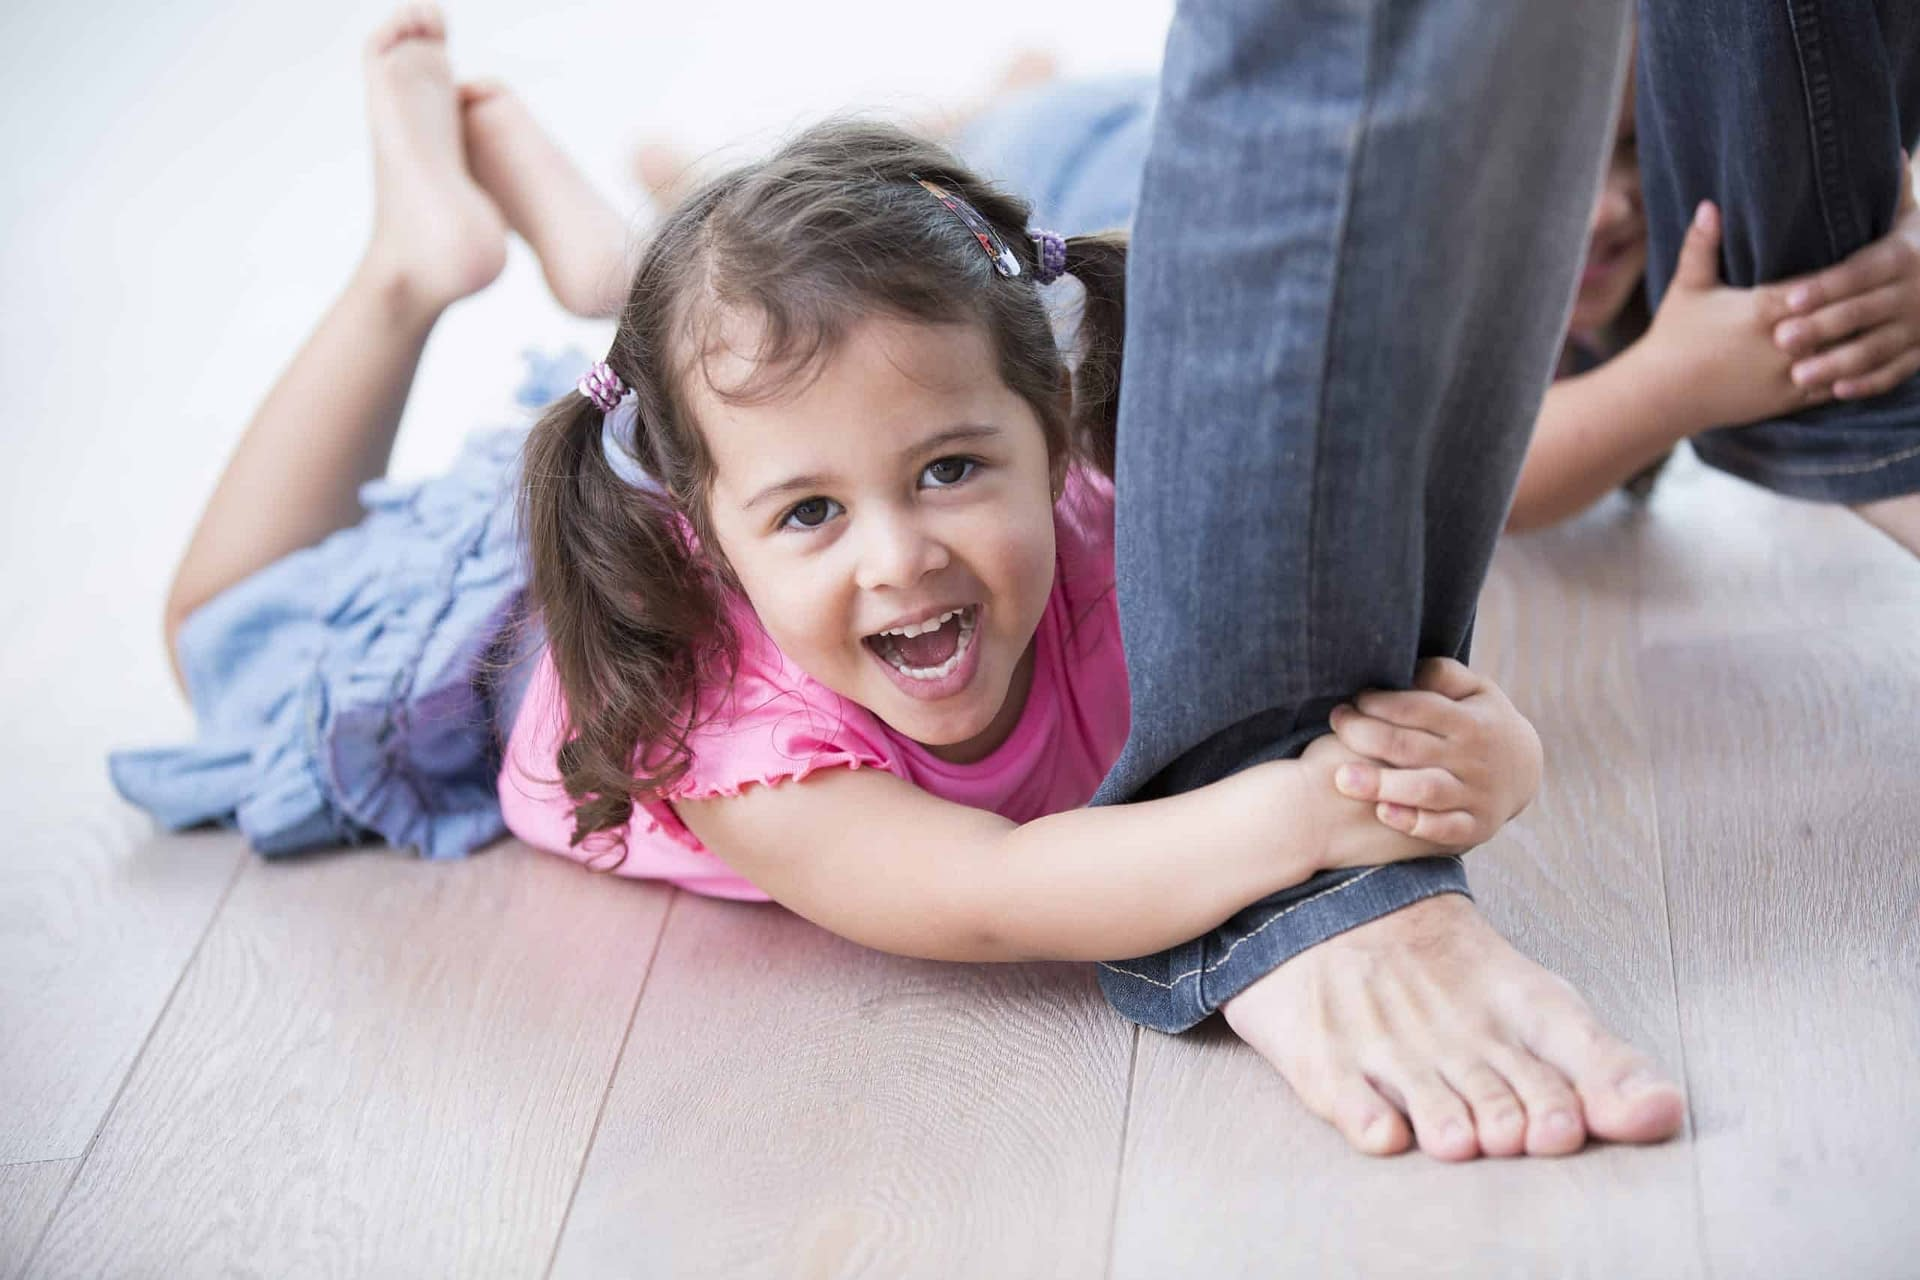 girl clinging to dad on wood floor